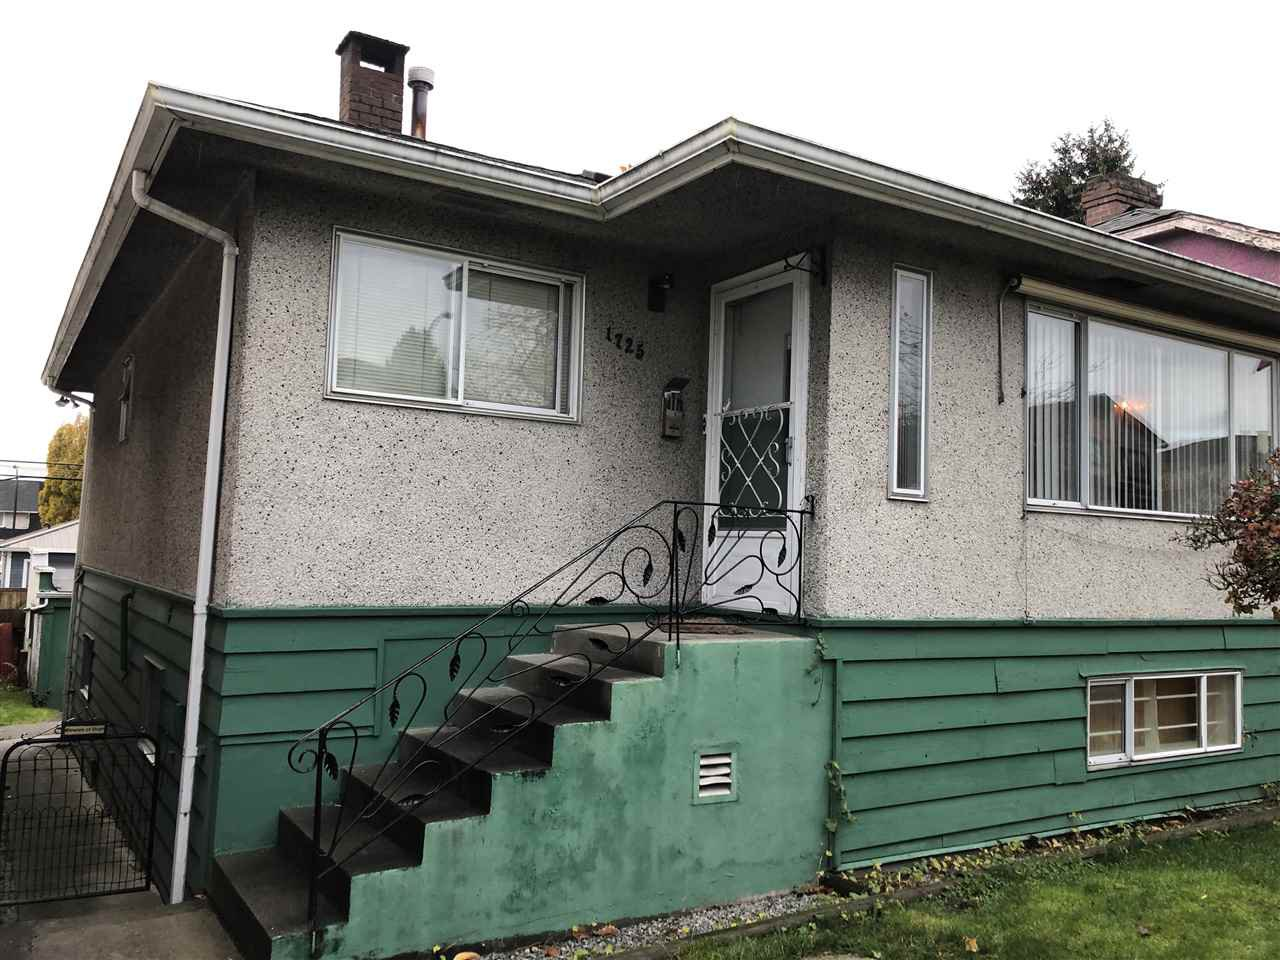 Main Photo: 1725 E 34TH Avenue in Vancouver: Victoria VE House for sale (Vancouver East)  : MLS®# R2519582